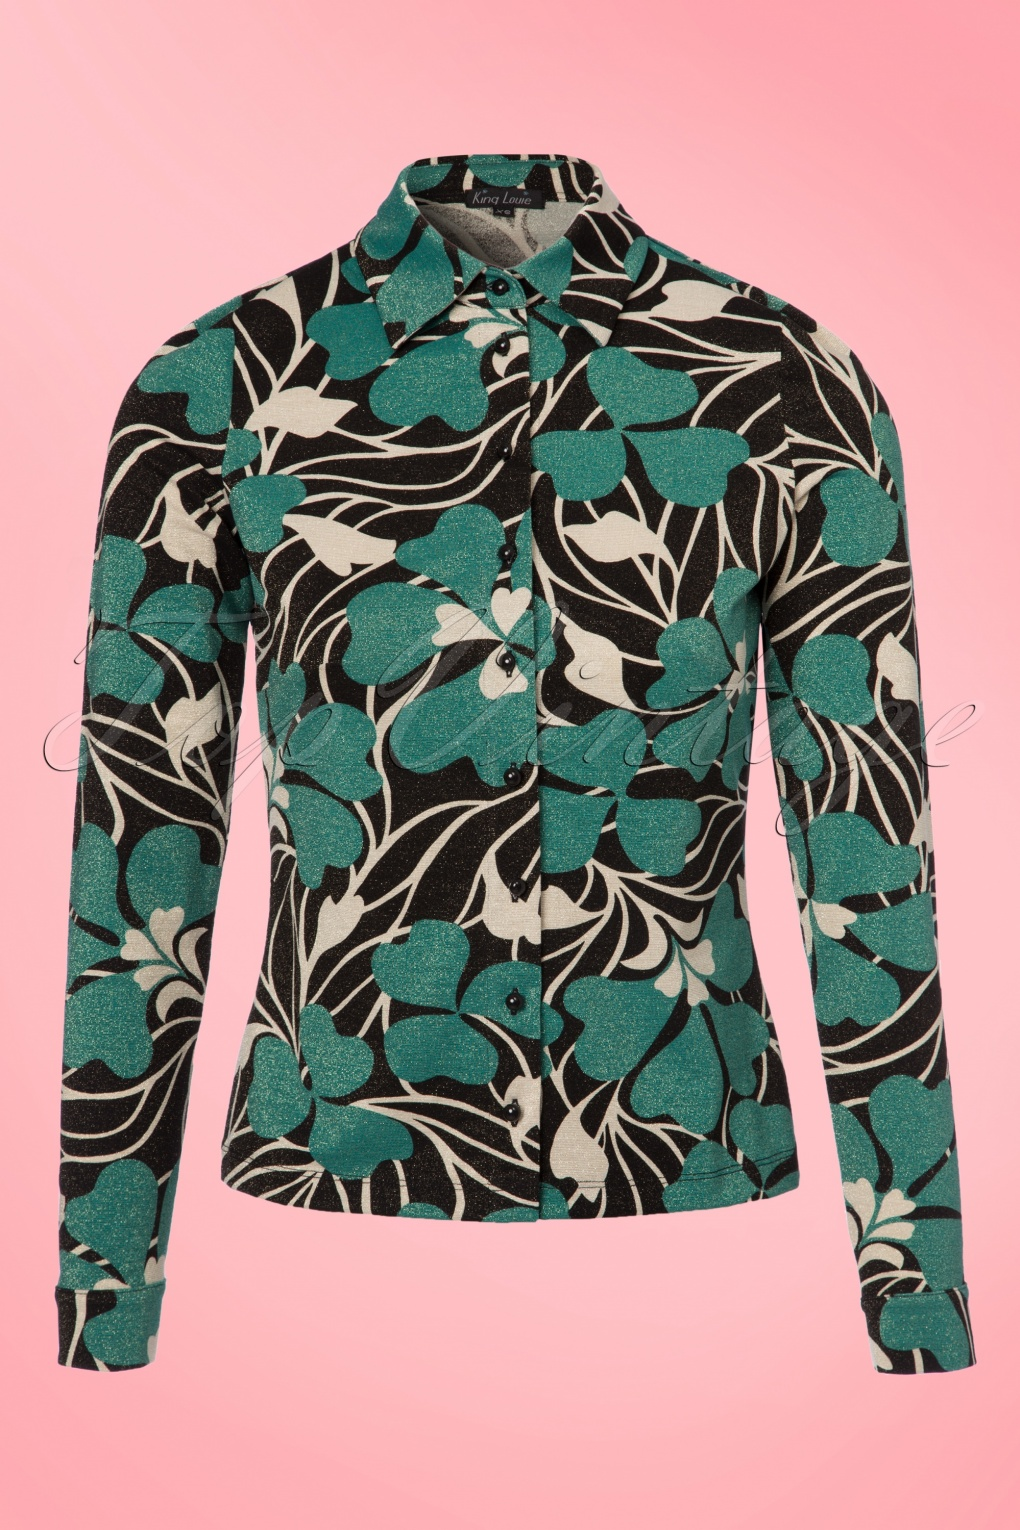 Shop 1960s Style Blouses, Shirts and Tops 60s Shamrock Blouse in Black and Cream £85.87 AT vintagedancer.com